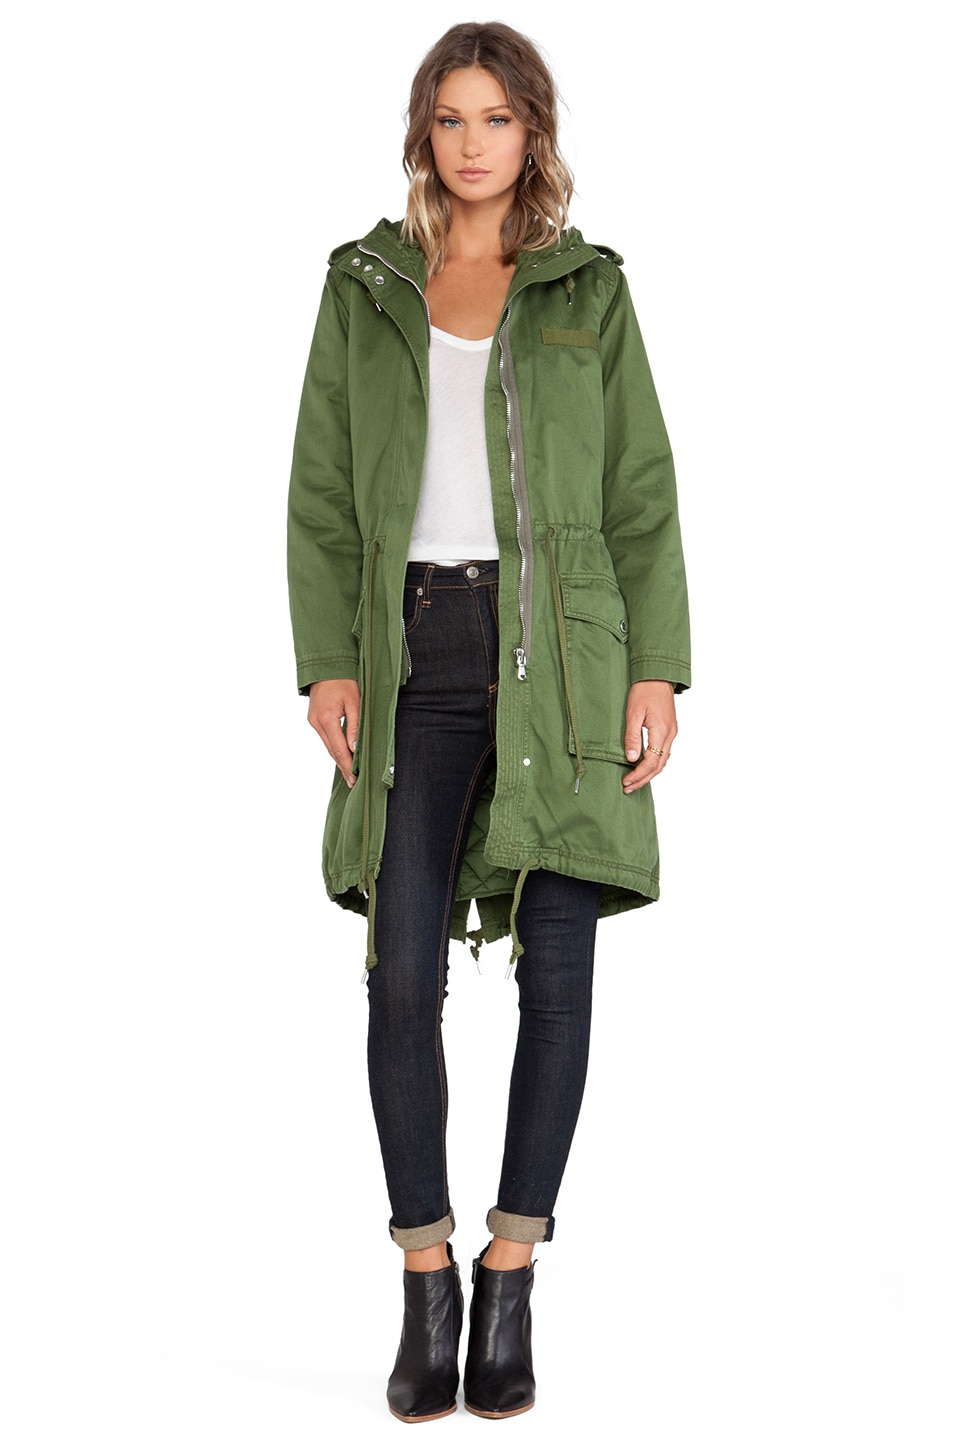 Marc by Marc Jacobs Classic Anorak Jacket in New Fatigue Green